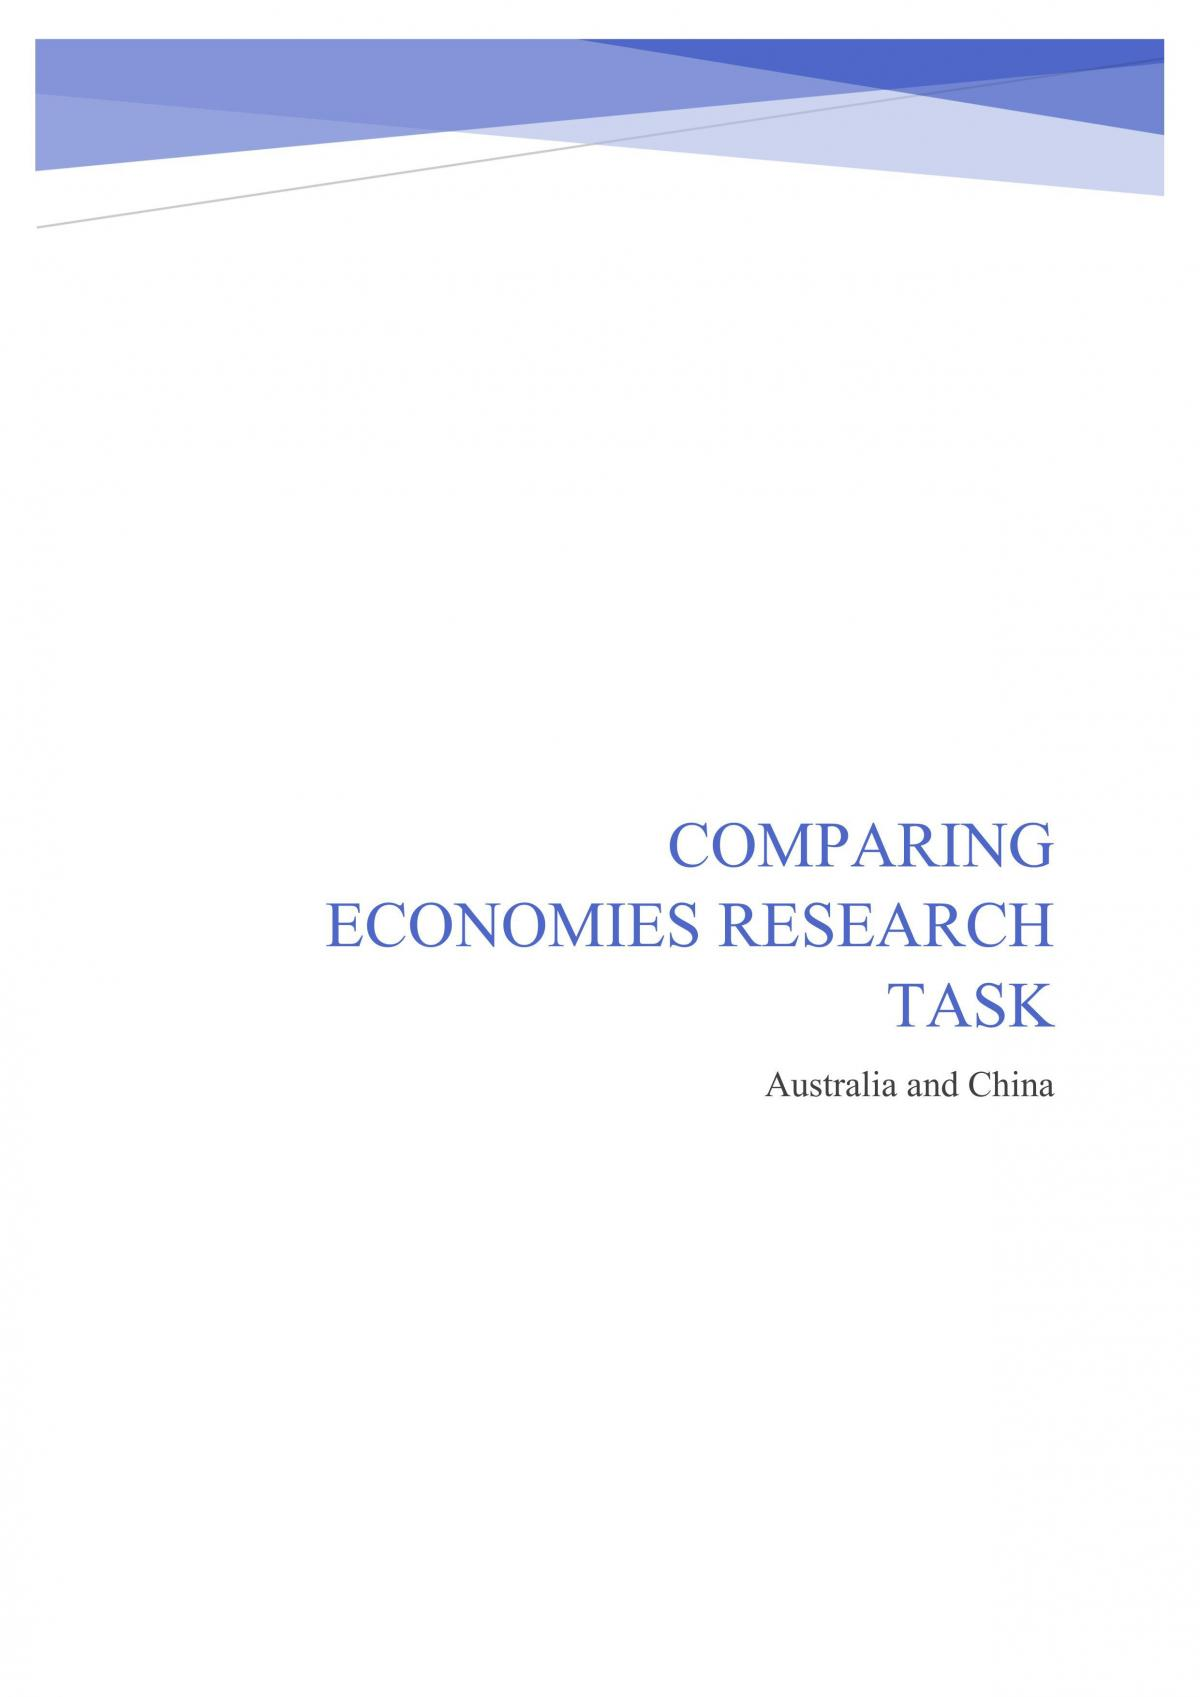 Comparing Economies Research Task- Australia and China - Page 1